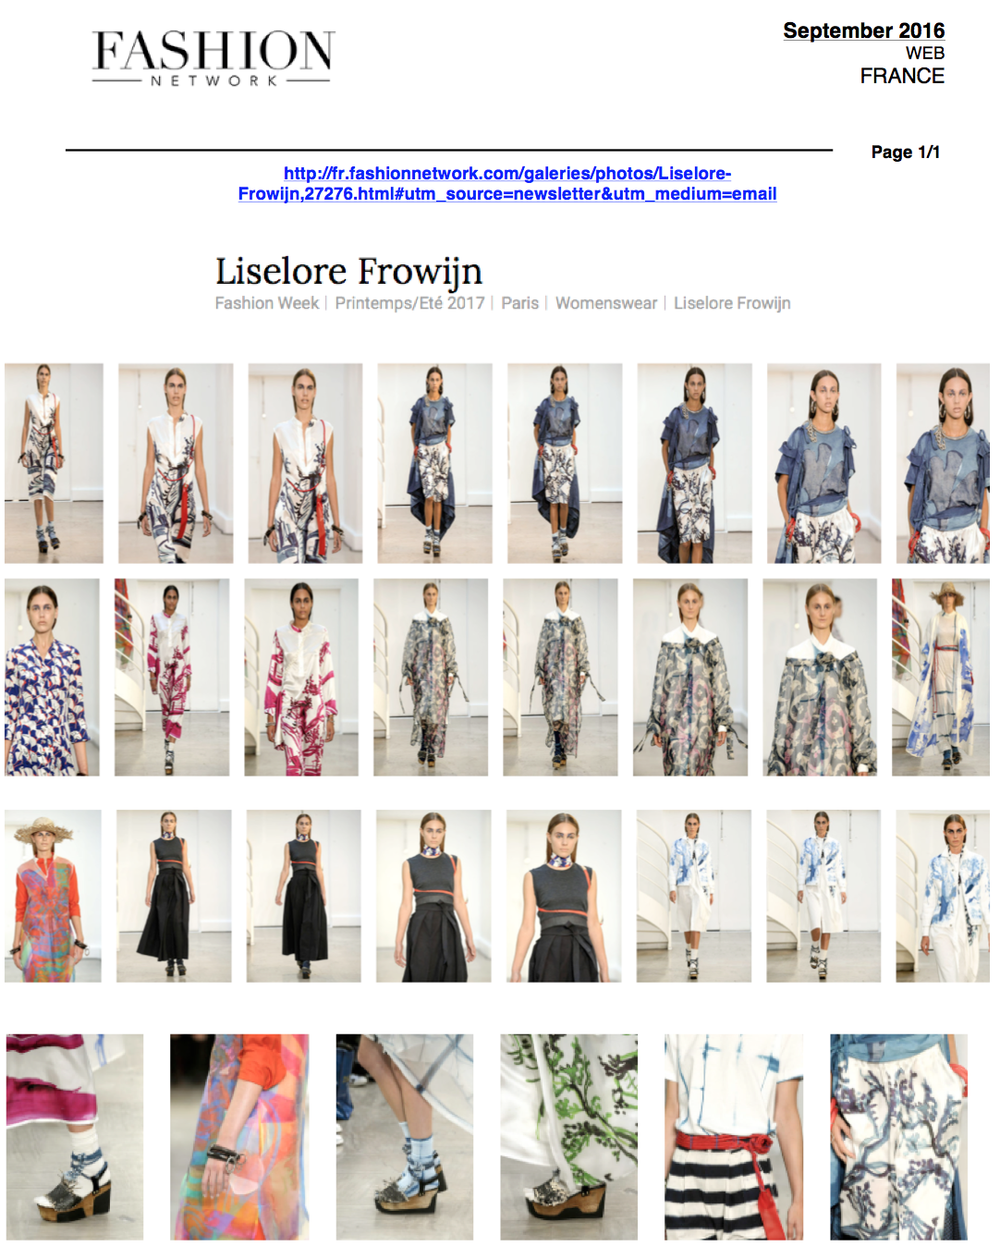 SEPTEMBER 2016 -  FASHION NETWORK 3.png